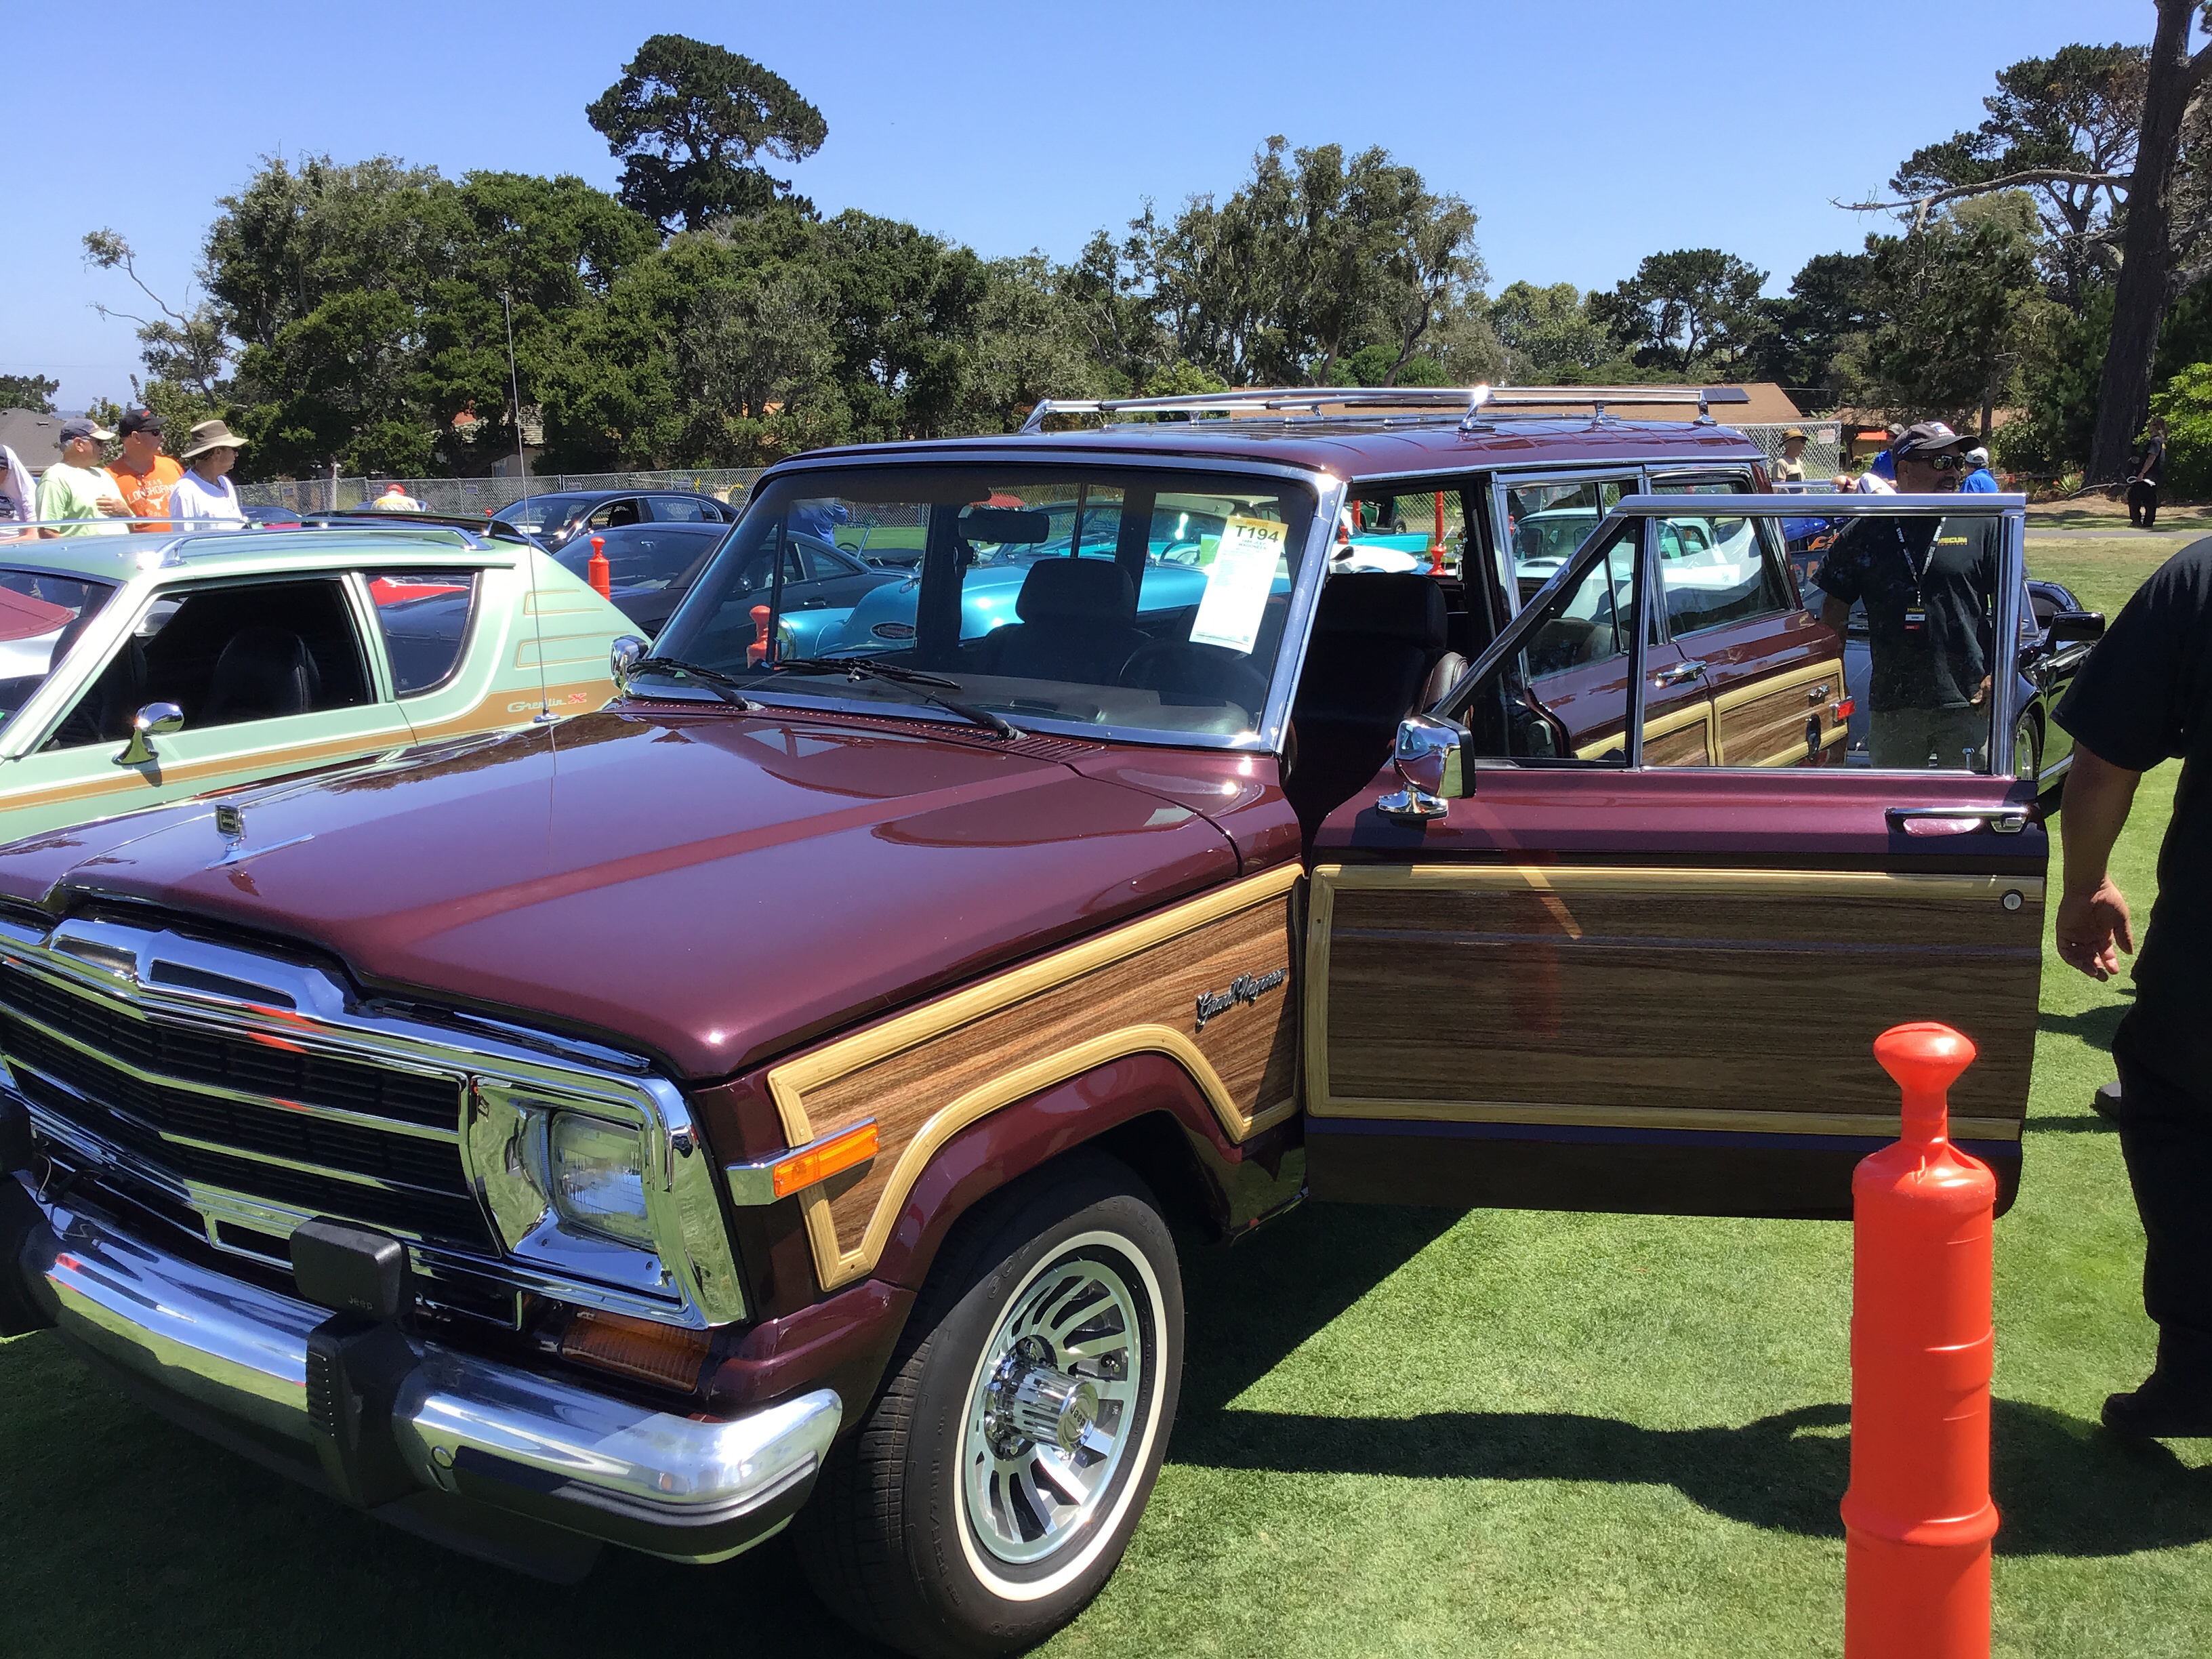 1991 Jeep Grand Wagoneer Values | Hagerty Valuation Tool®